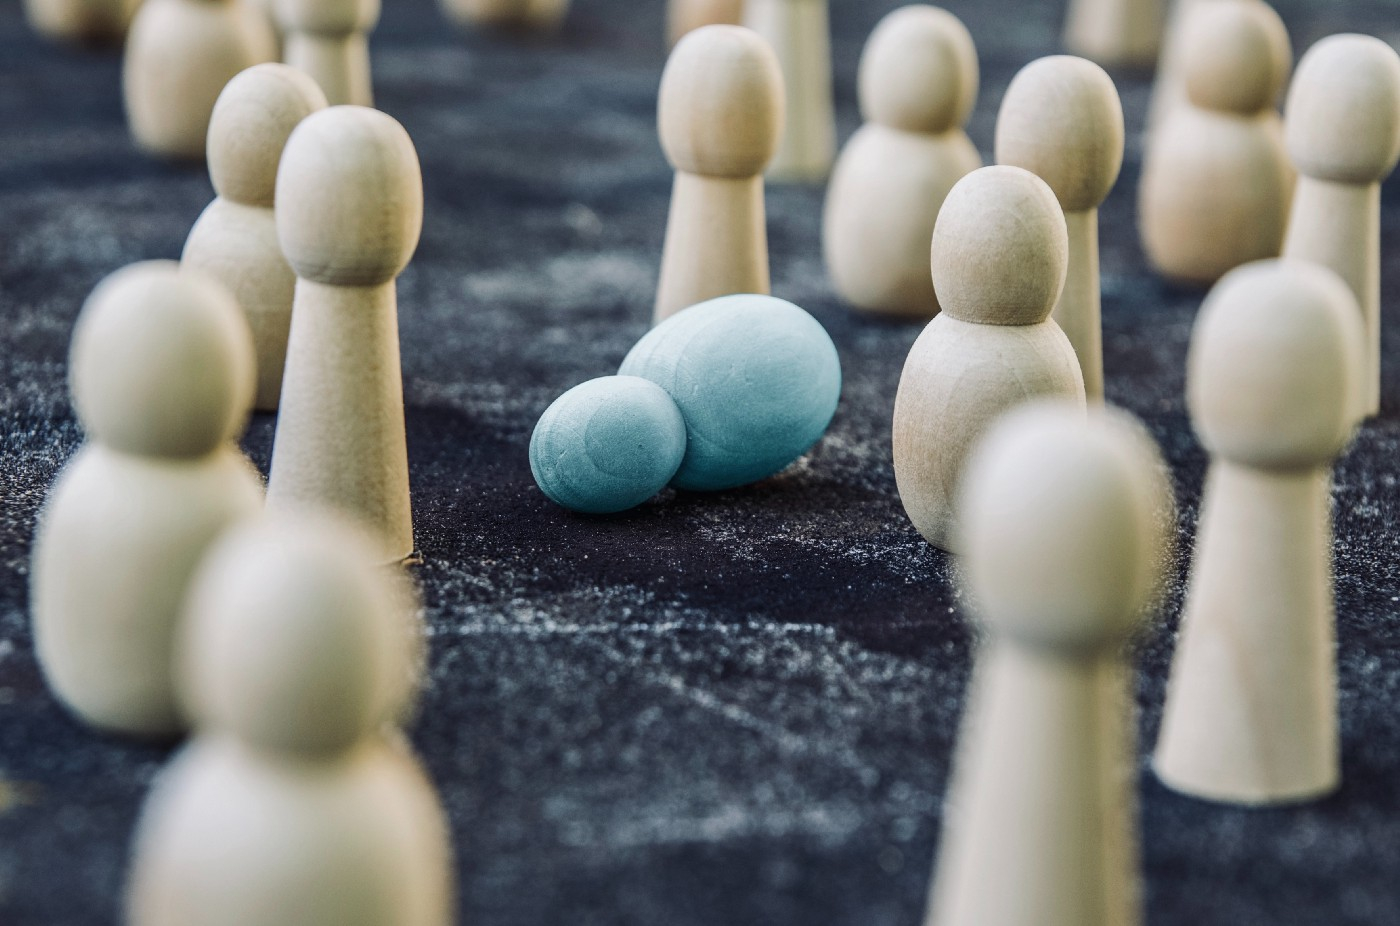 A round blue fallen pawn among a group of upstanding white pawns and bishops and rooks.